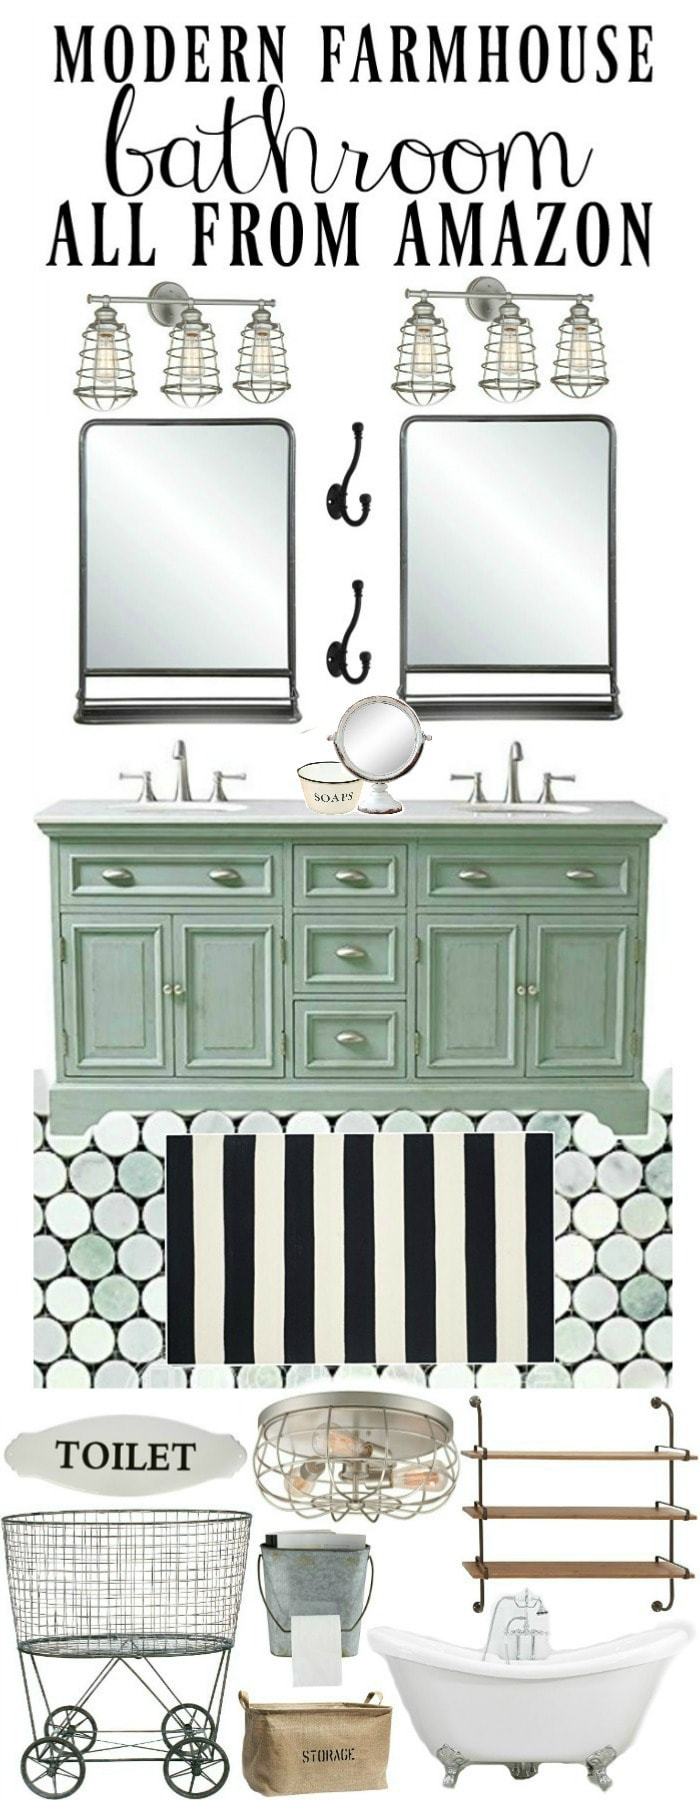 Modern Farmhouse bathroom - All from Amazon!